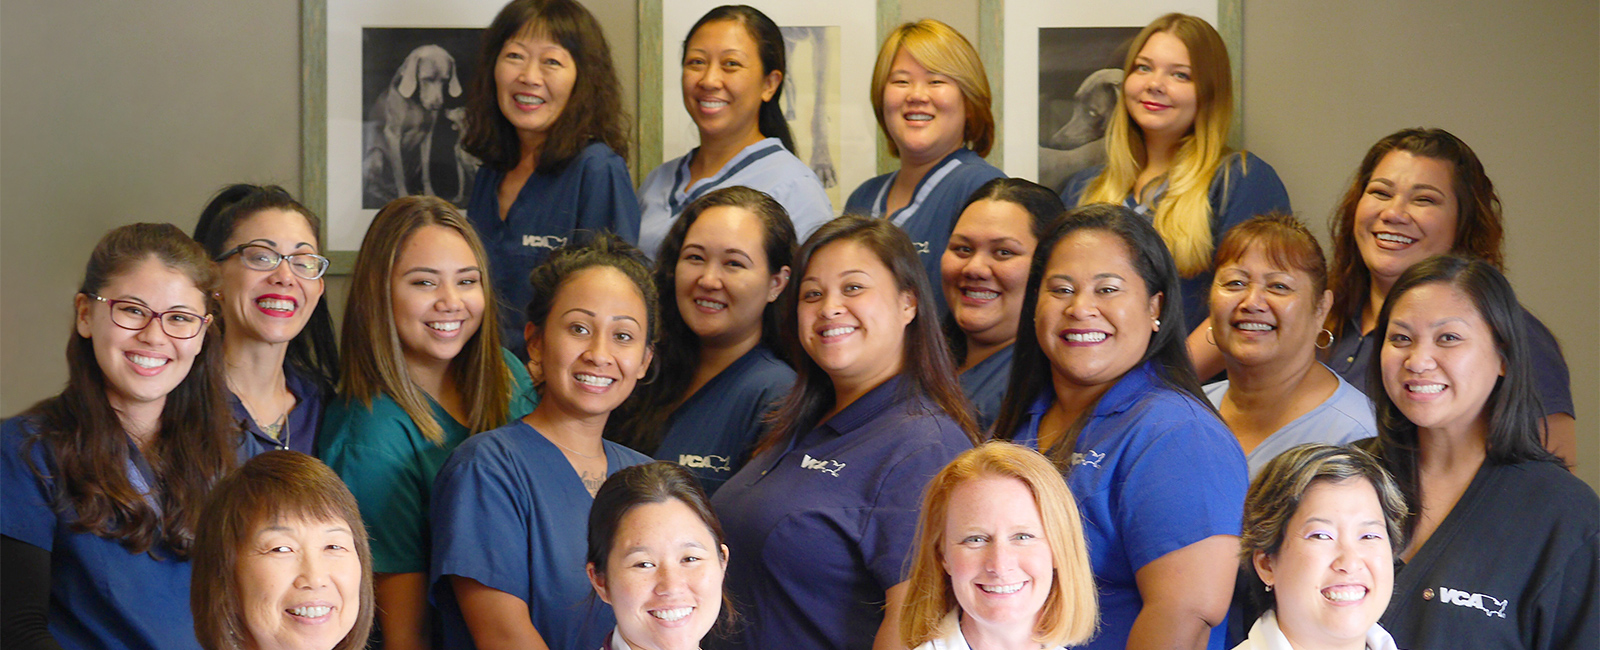 Team Picture of VCA Waipahu Animal Hospital